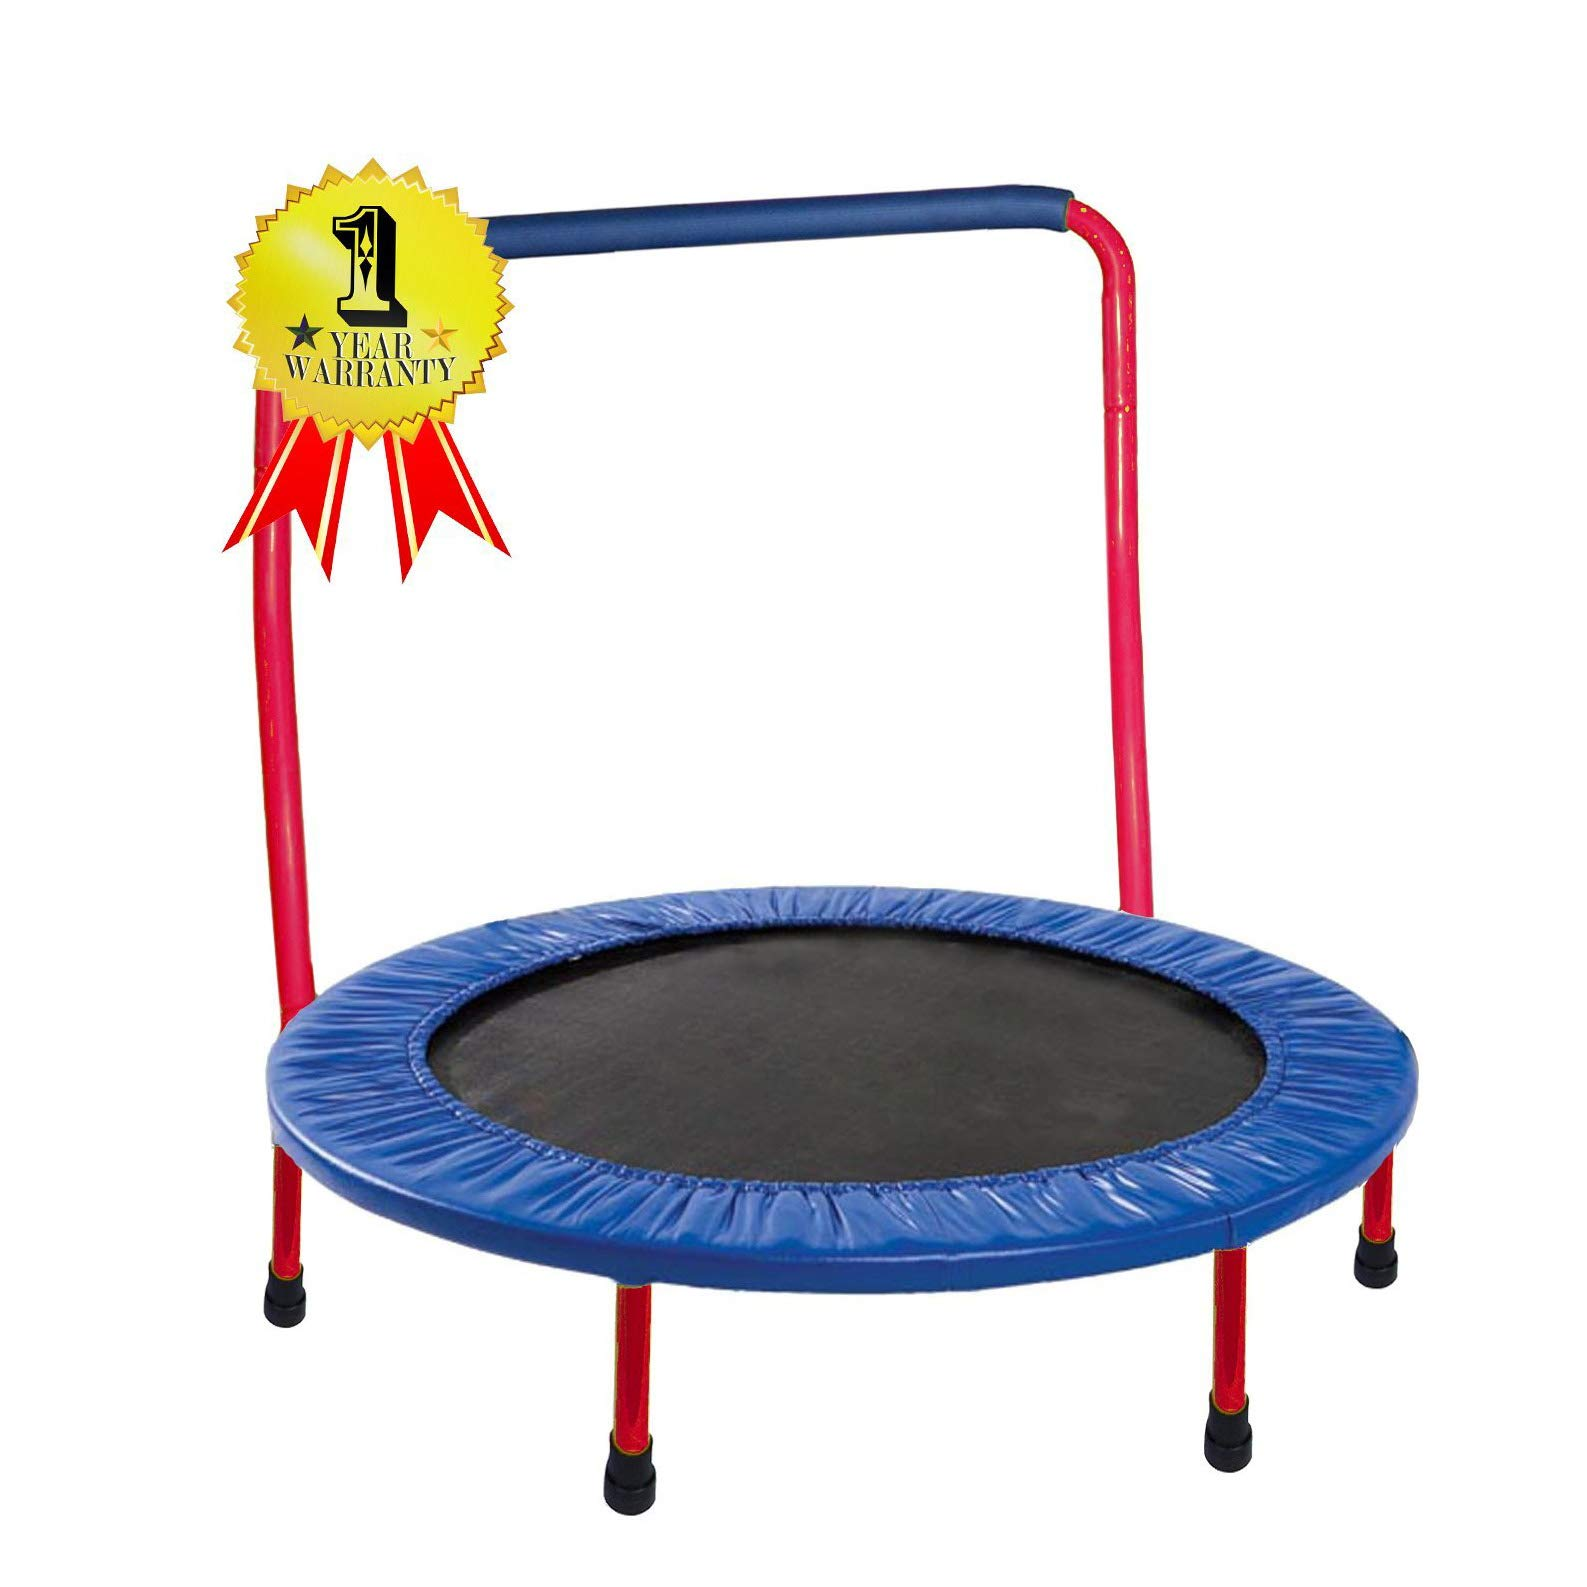 JumJoe Kids Trampoline - 36 inch, with Handle Bar, Safety, Portable - 1 Year Warranty (Red) with Safety Pad